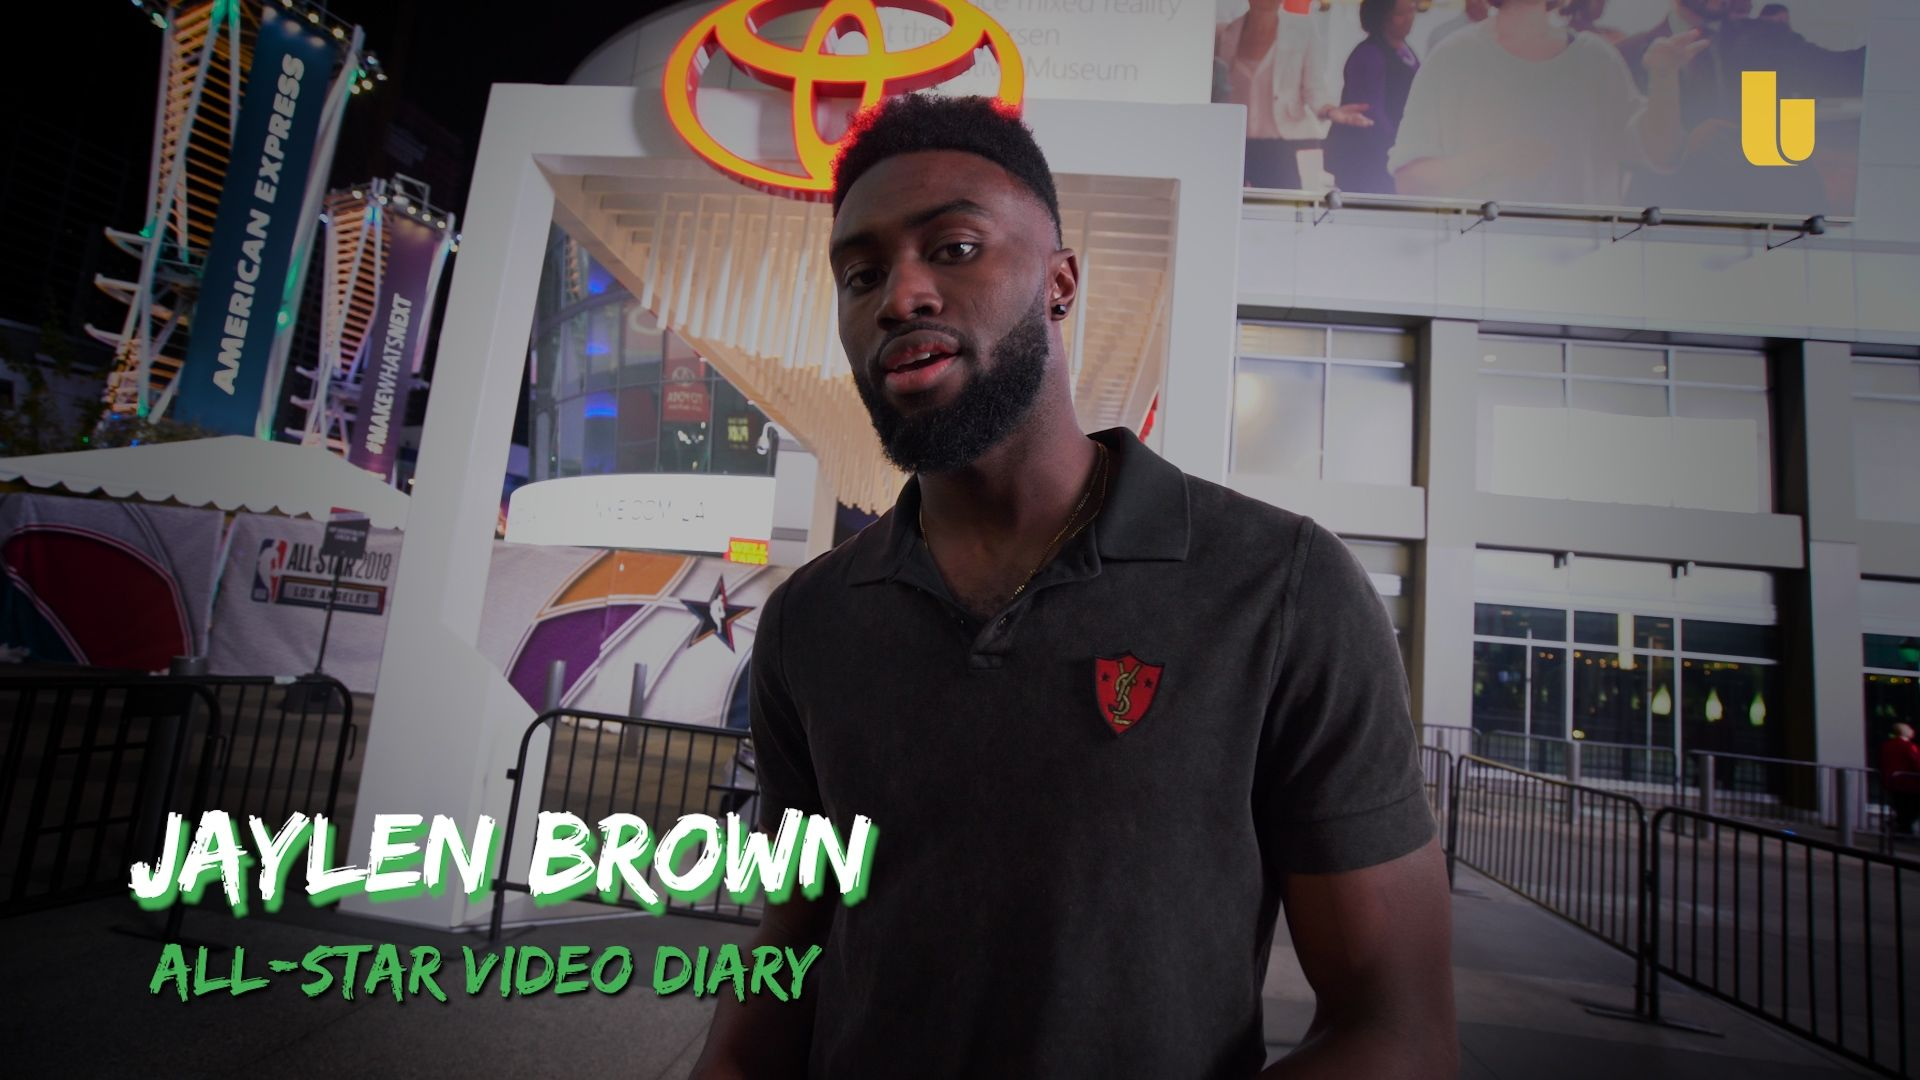 Jaylen Brown All-access: L.A. All-Star video diary